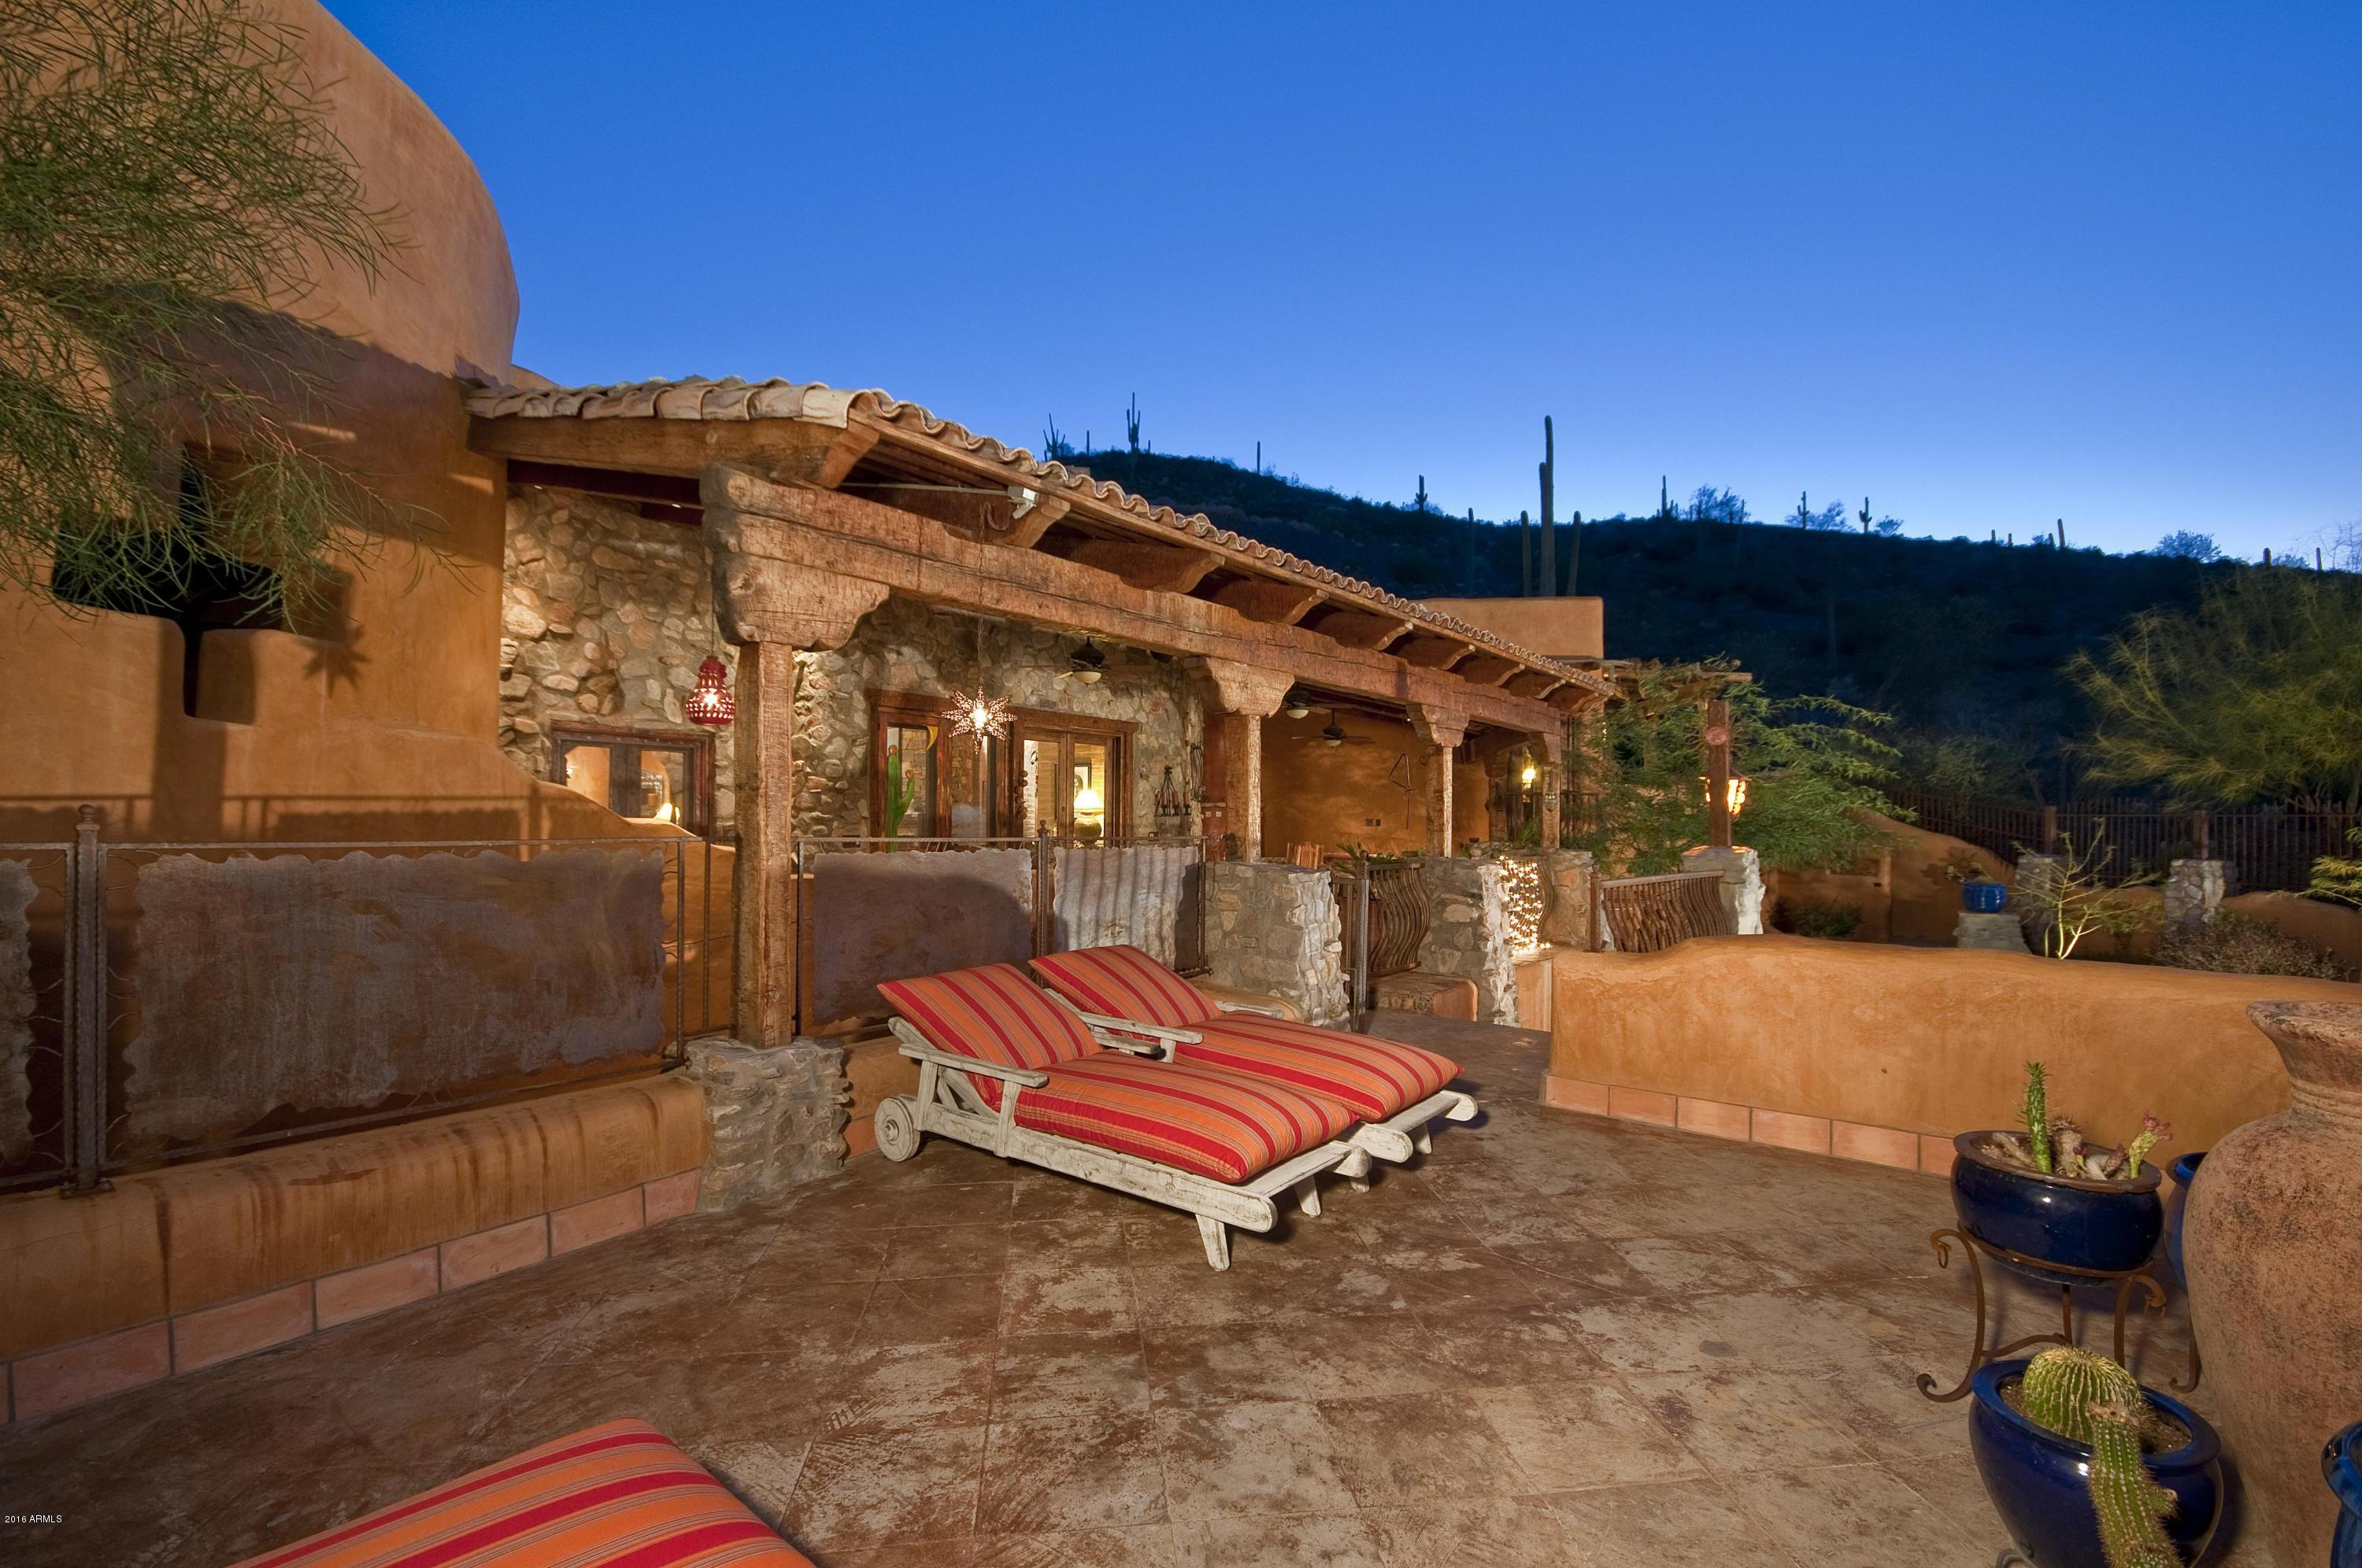 MLS 5885496 37405 N SCHOOL HOUSE Road, Cave Creek, AZ 85331 Cave Creek AZ Private Spa